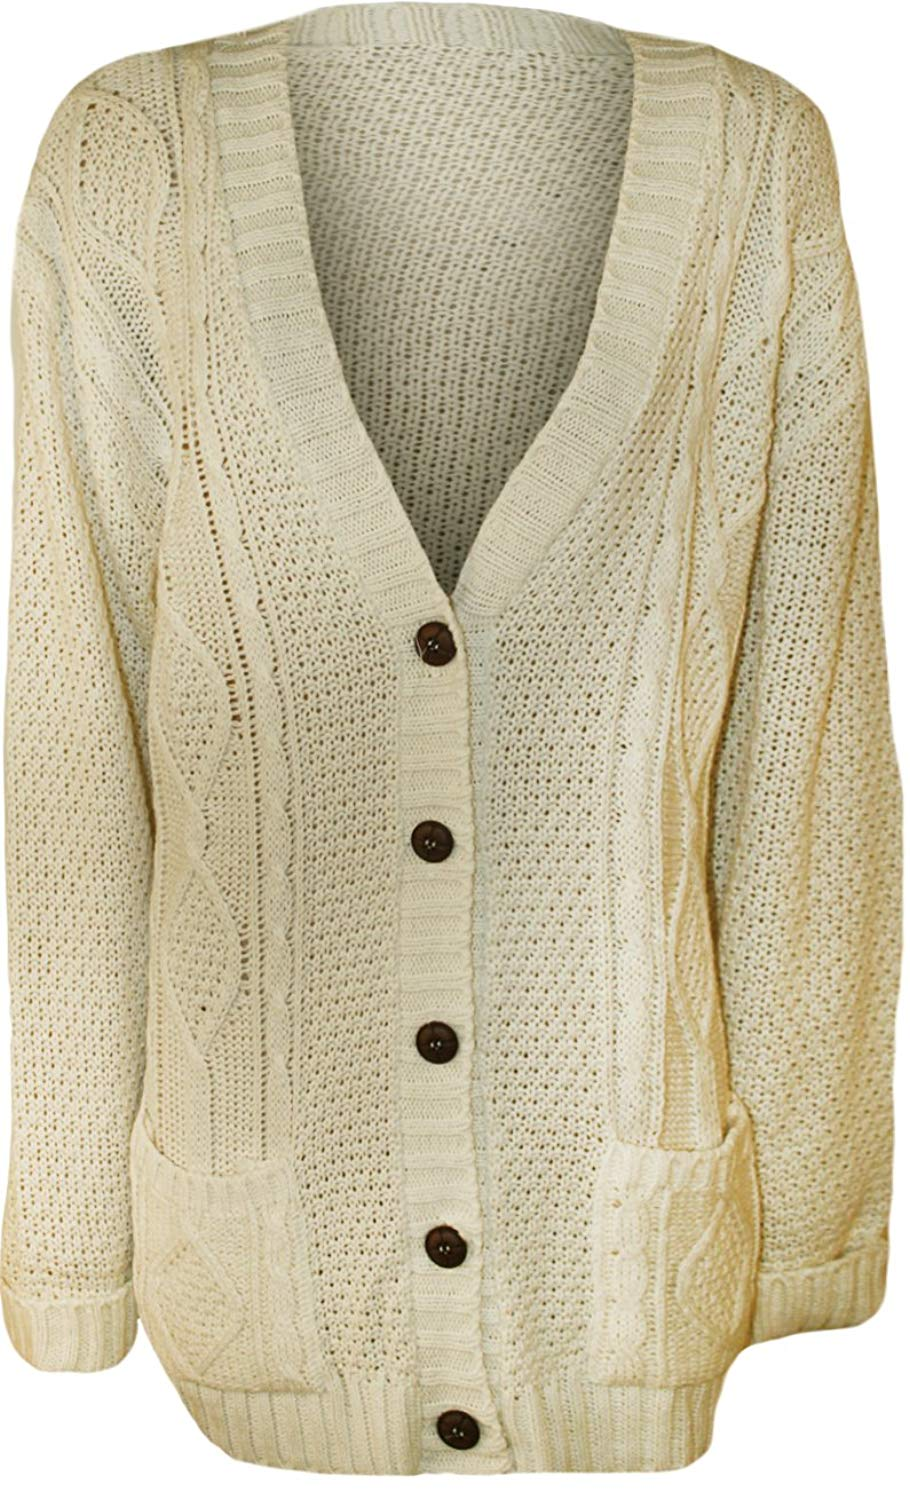 33b2b4744b Get Quotations · WearAll Women s Plus Size Button Cable Knit Cardigan -  Cream - US 16-18 (